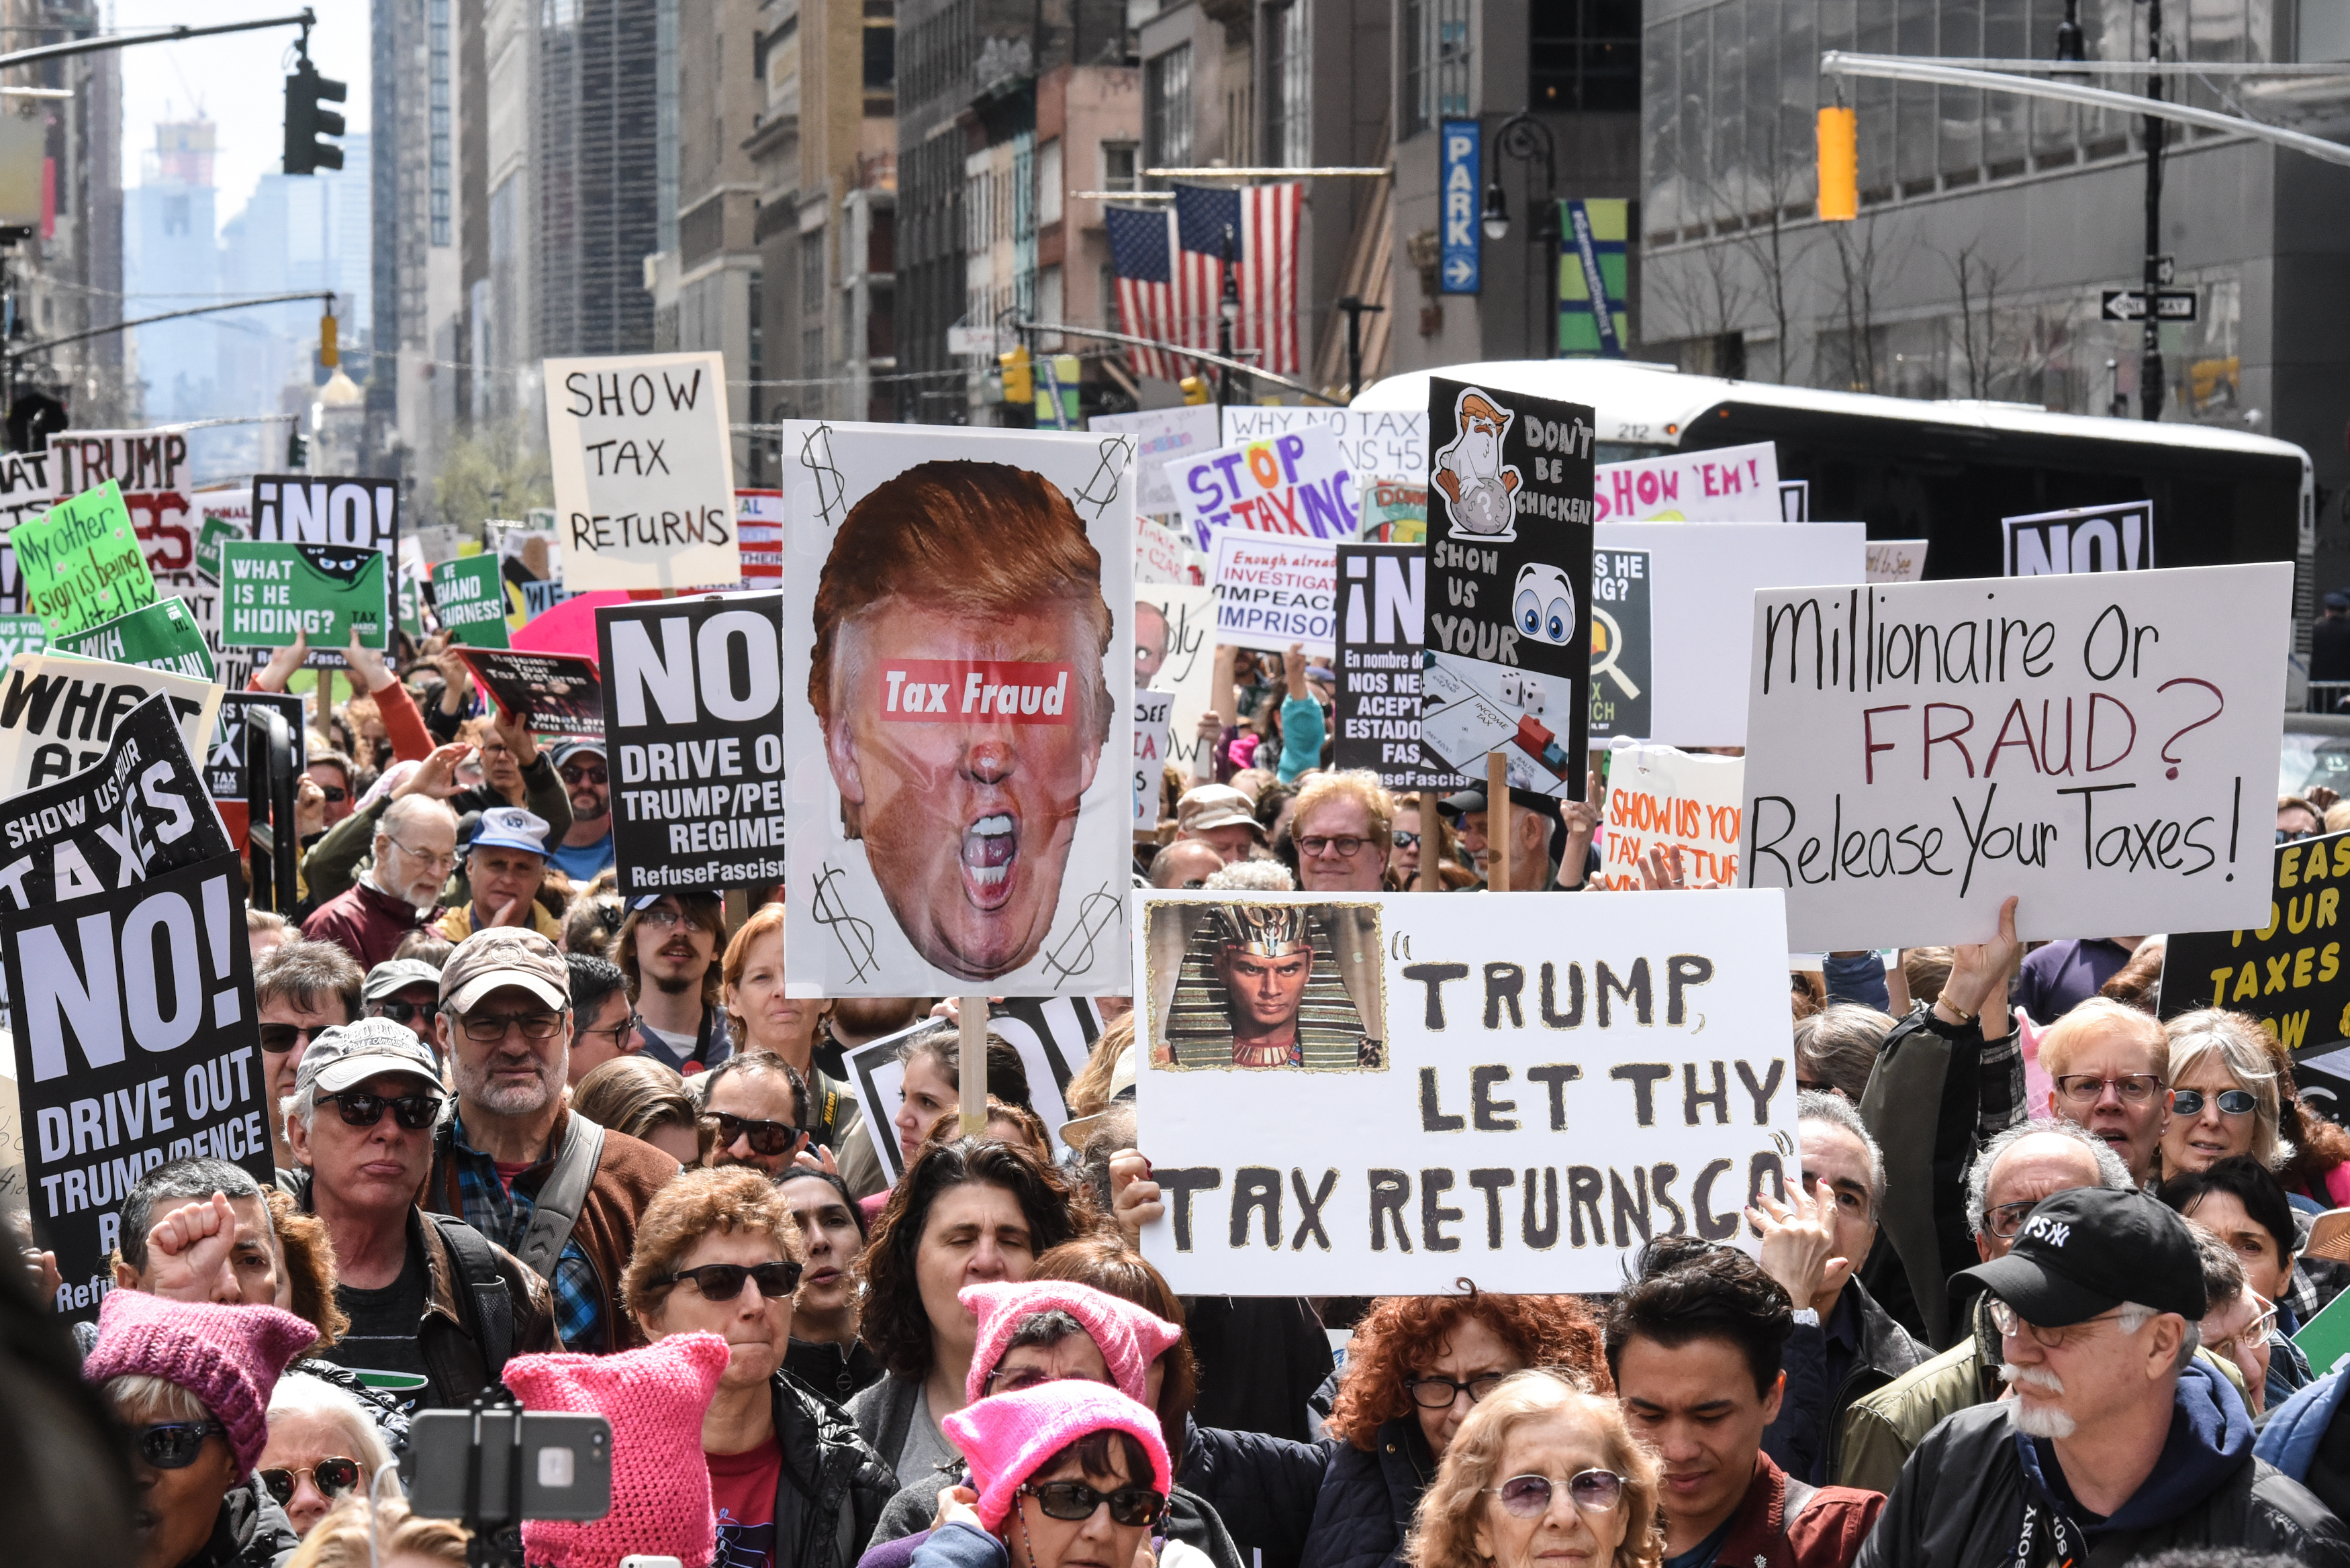 People participate in a Tax Day protest on April 15, 2017 in New York City. Activists in cities across the nation are marching today to call on President Donald Trump to release his tax returns. (Getty Images)